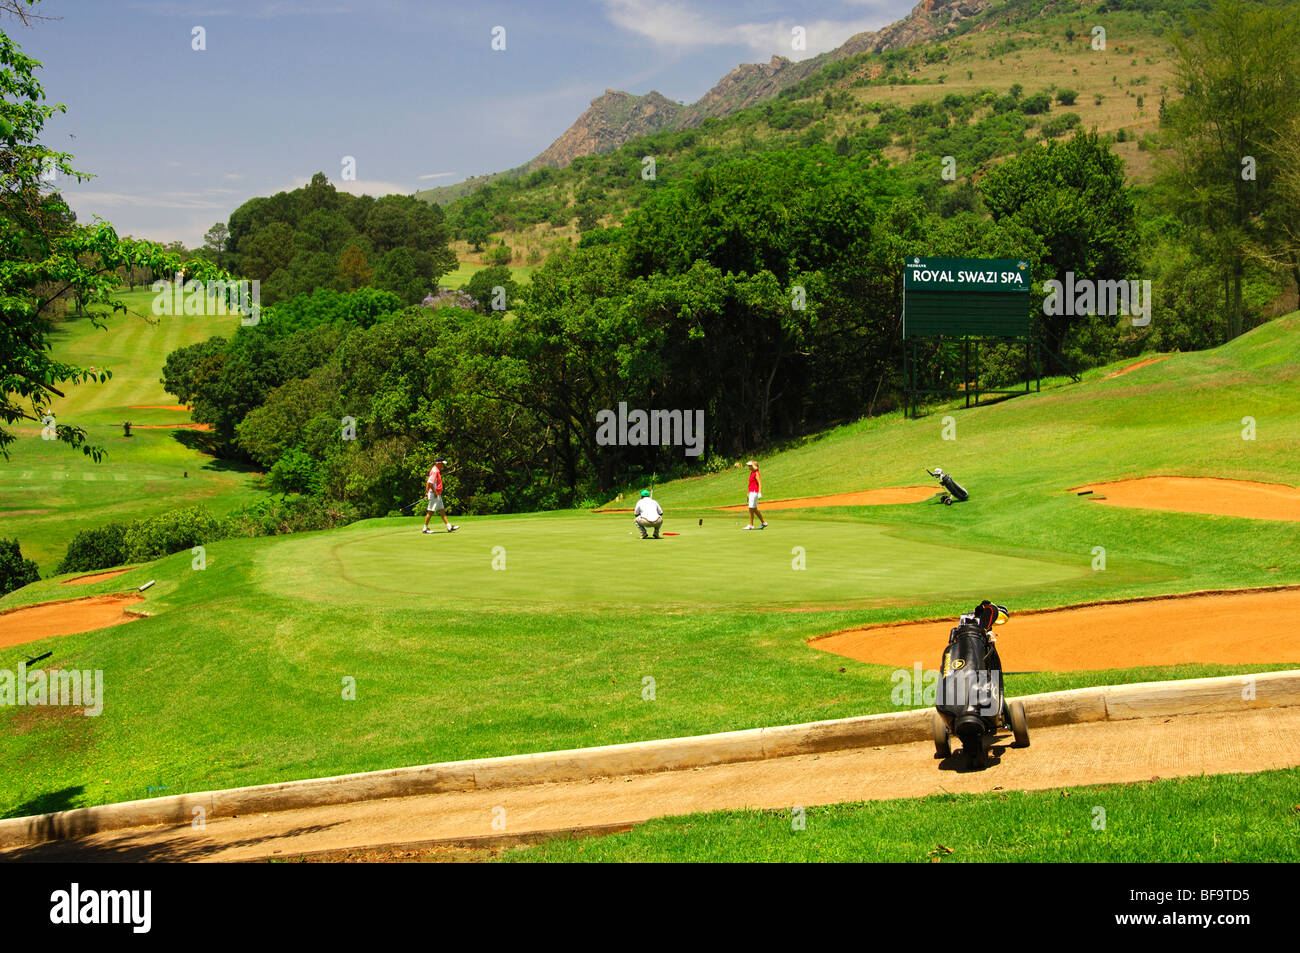 18-hole golf course of the Royal Swazi Spa Valley Resort, Ezulwini, Swaziland - Stock Image